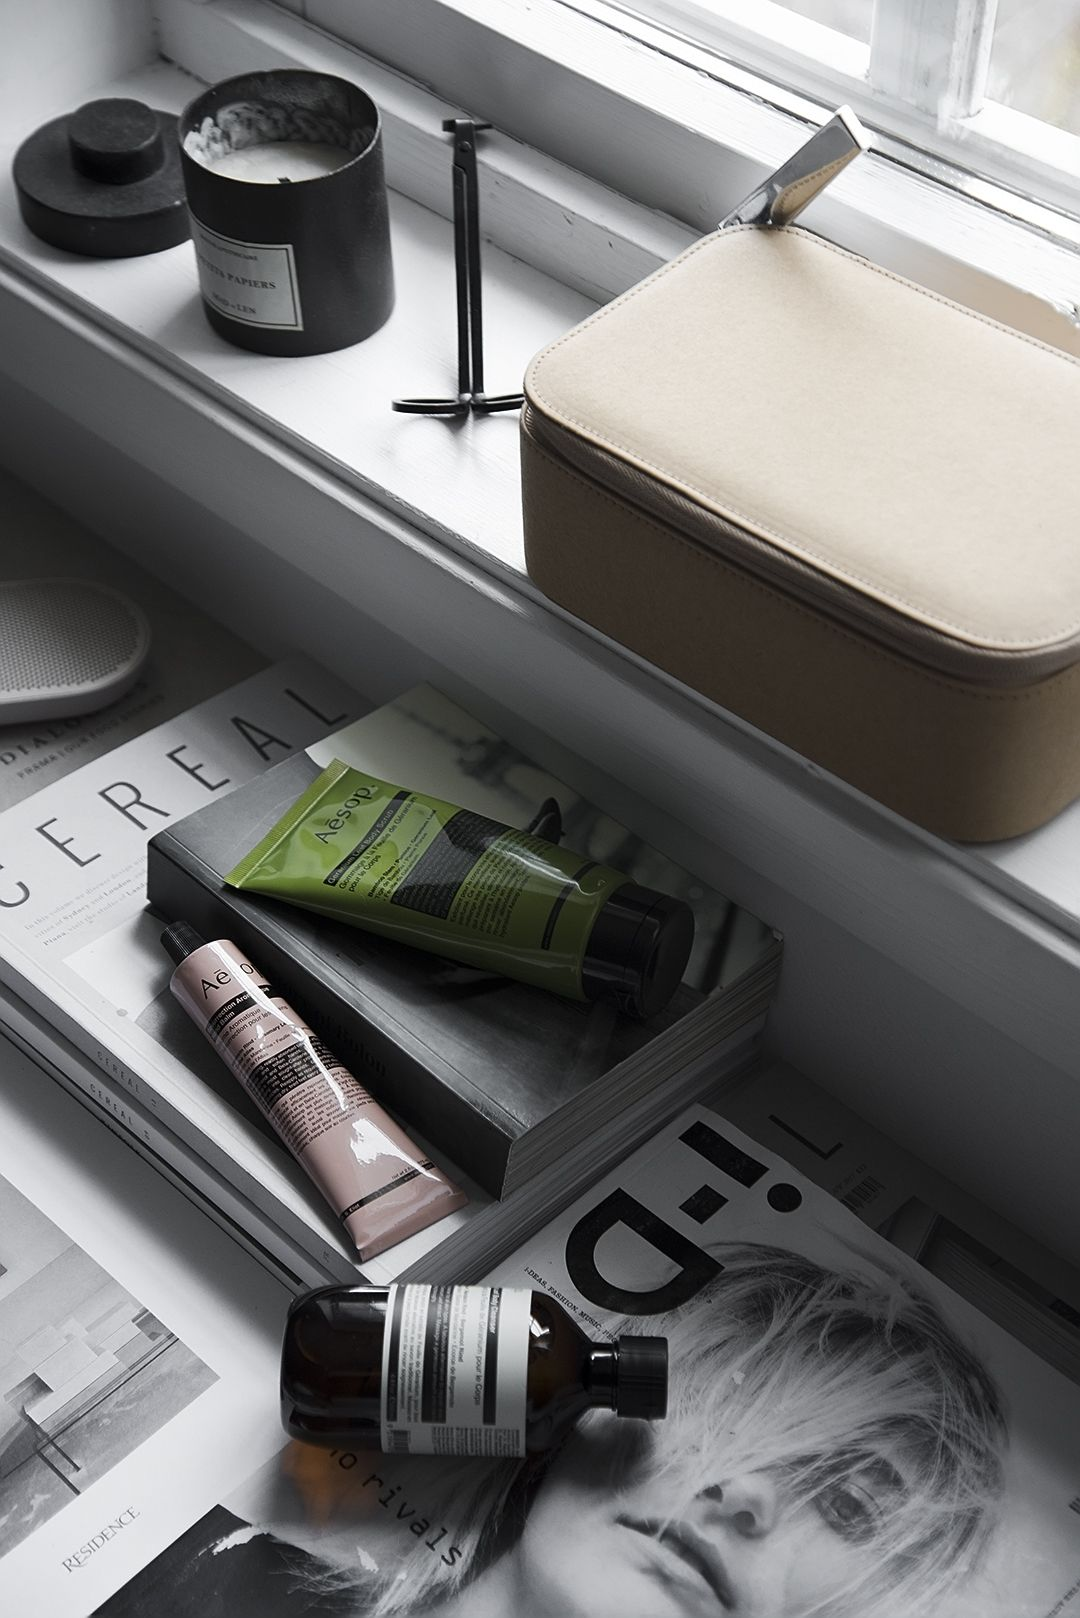 Exterieur wohndesign mit fliesen aesop  atlas of attraction  packaging  pinterest  love gifts